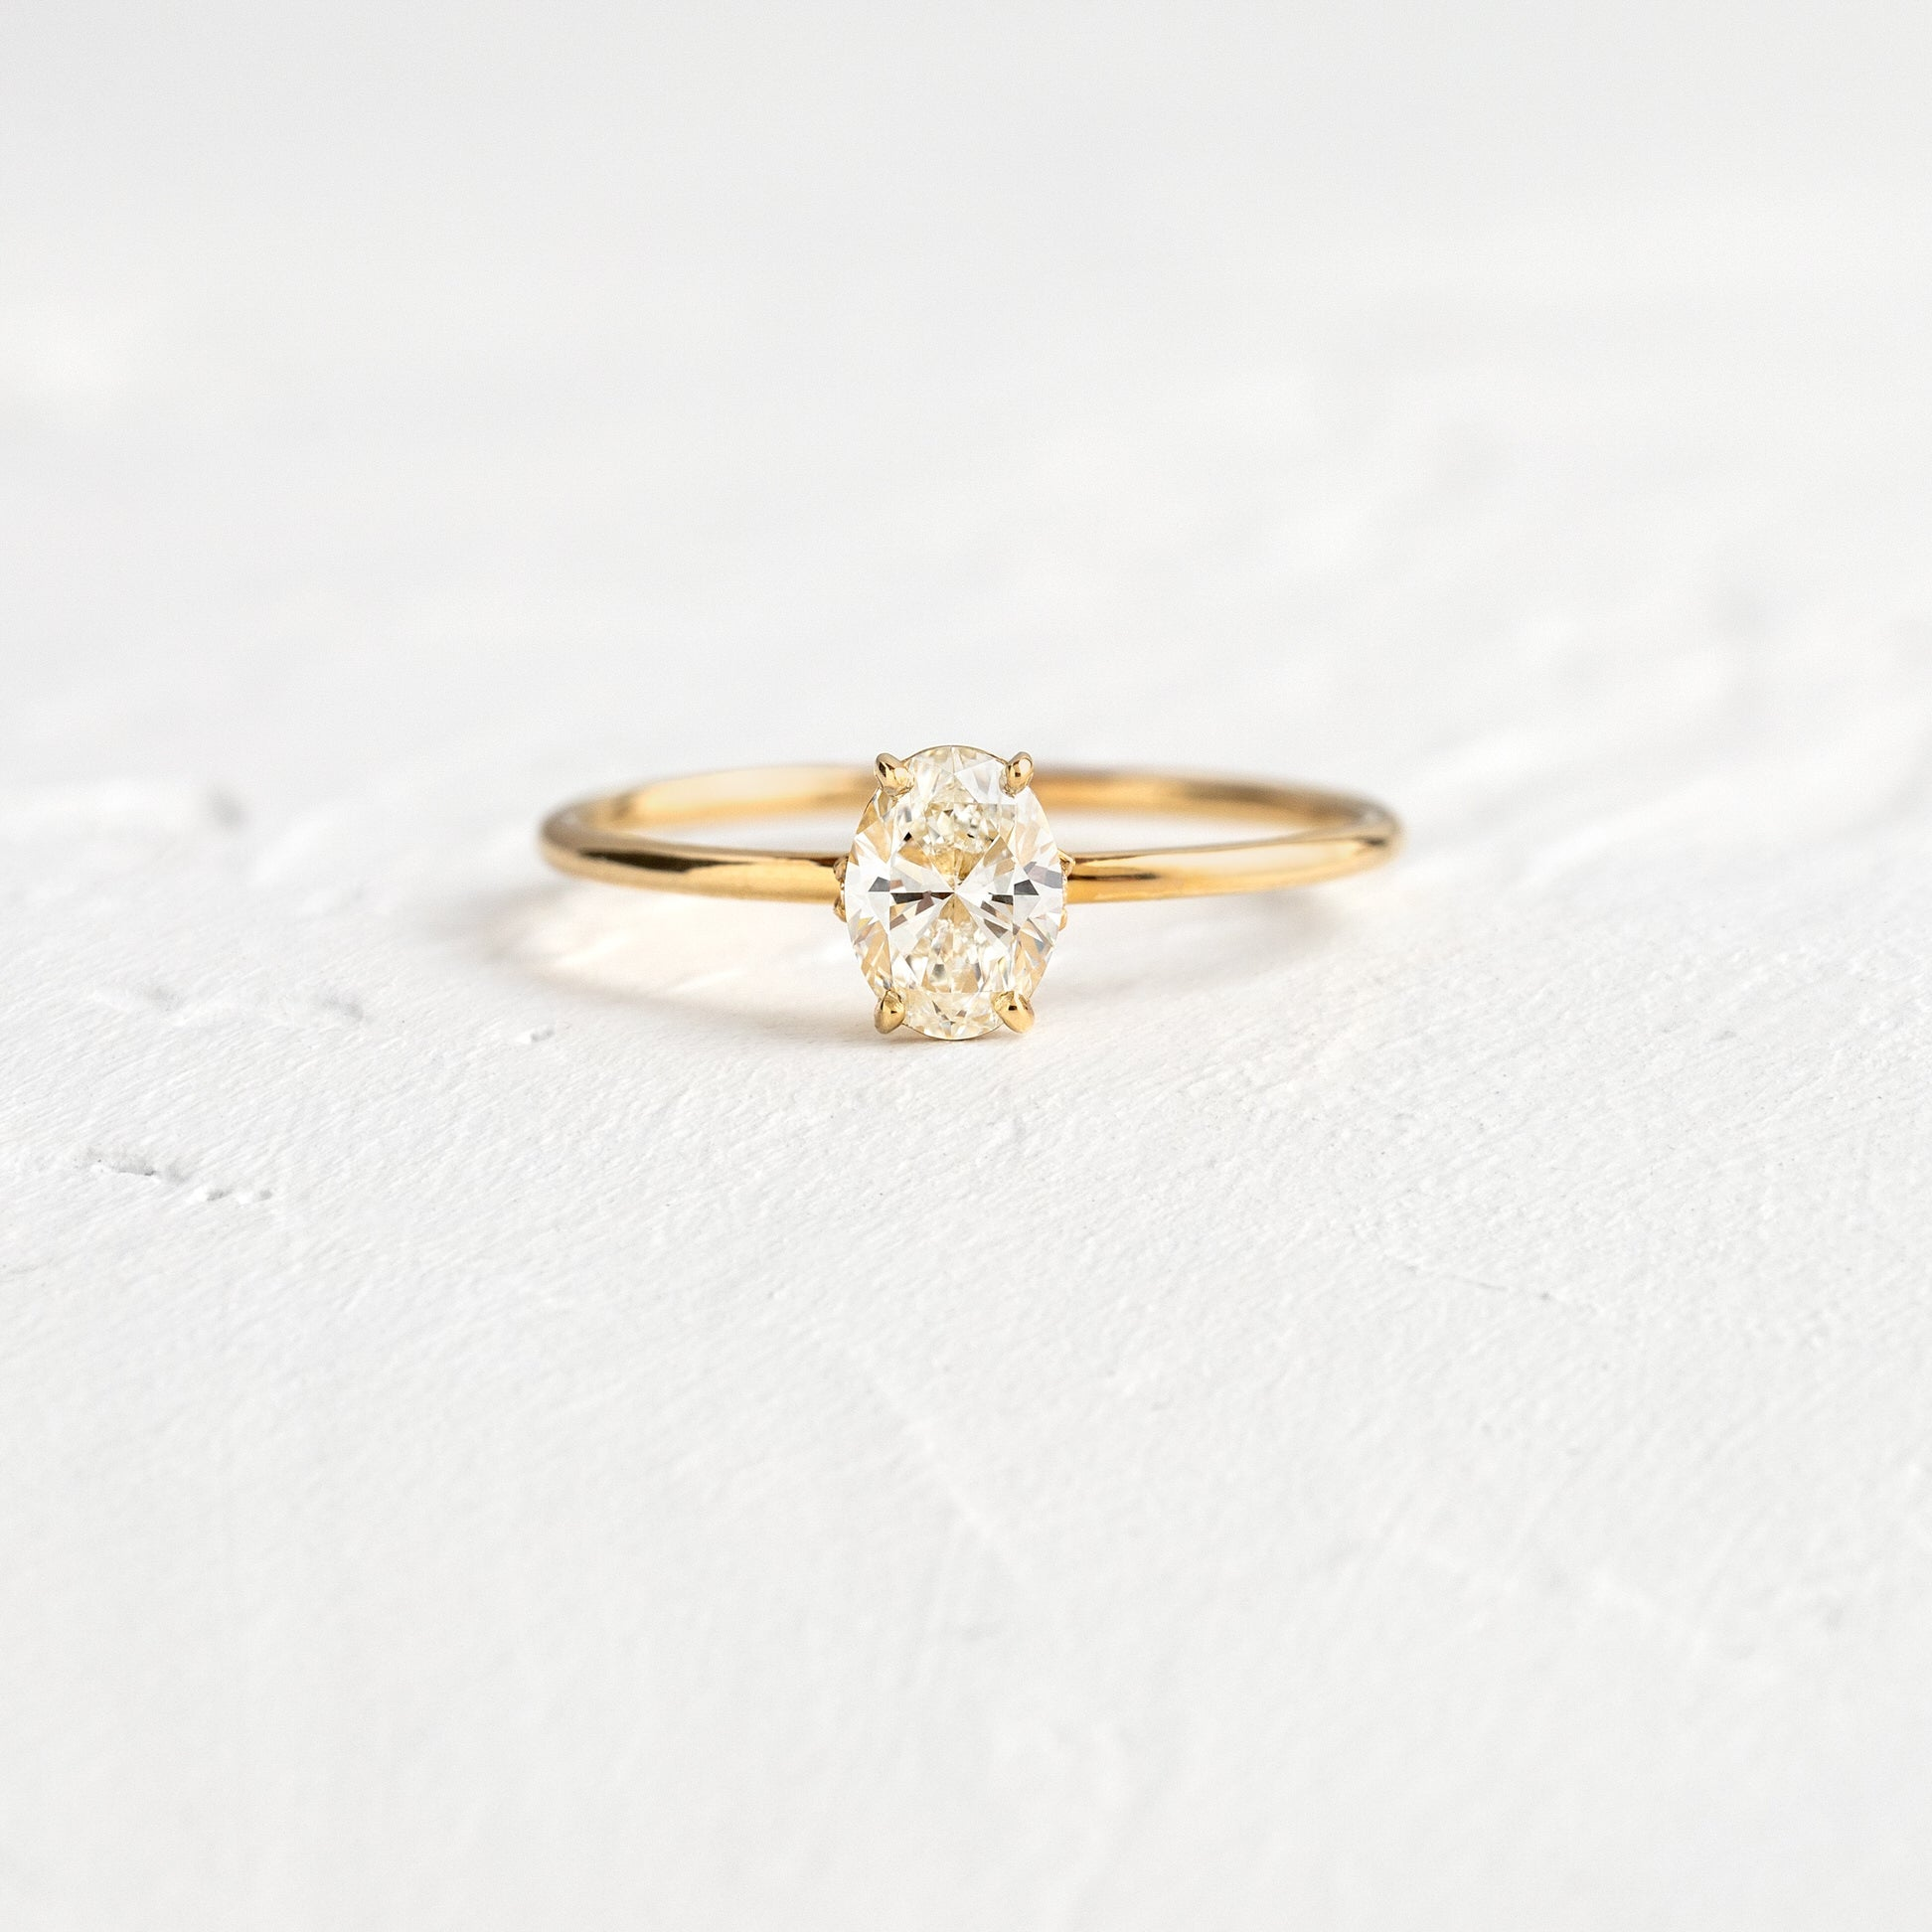 Unveiled Ring, 0.5ct. Oval Cut Diamond, Diamond Accents